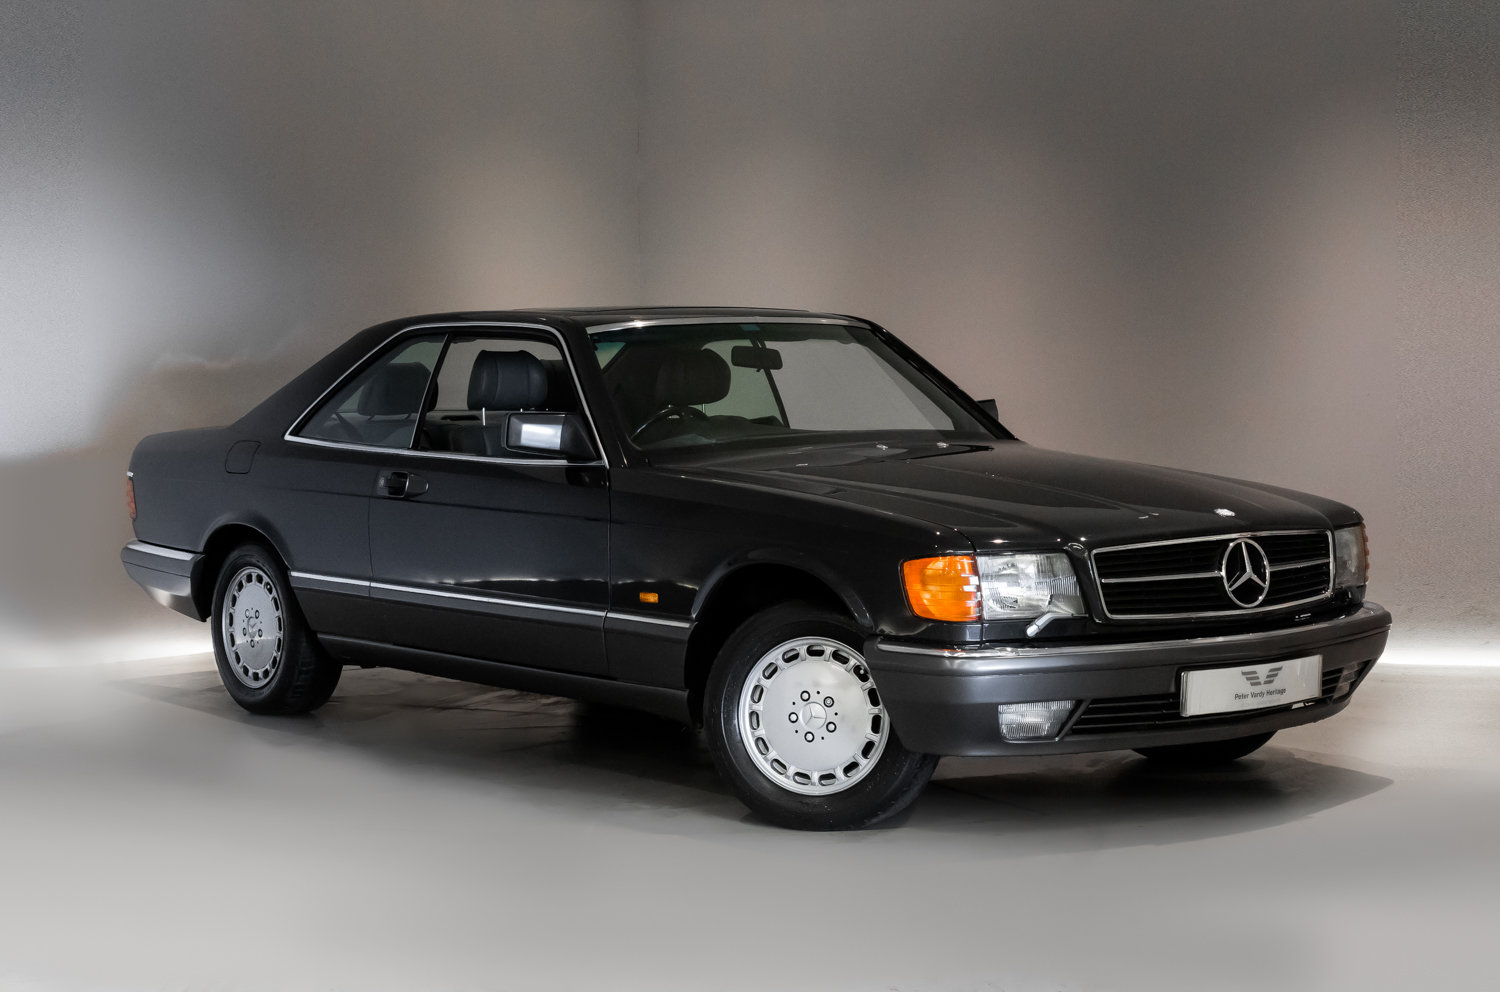 1990 *LOW MILES-THE BEST AVAILABLE* For Sale (picture 1 of 12)